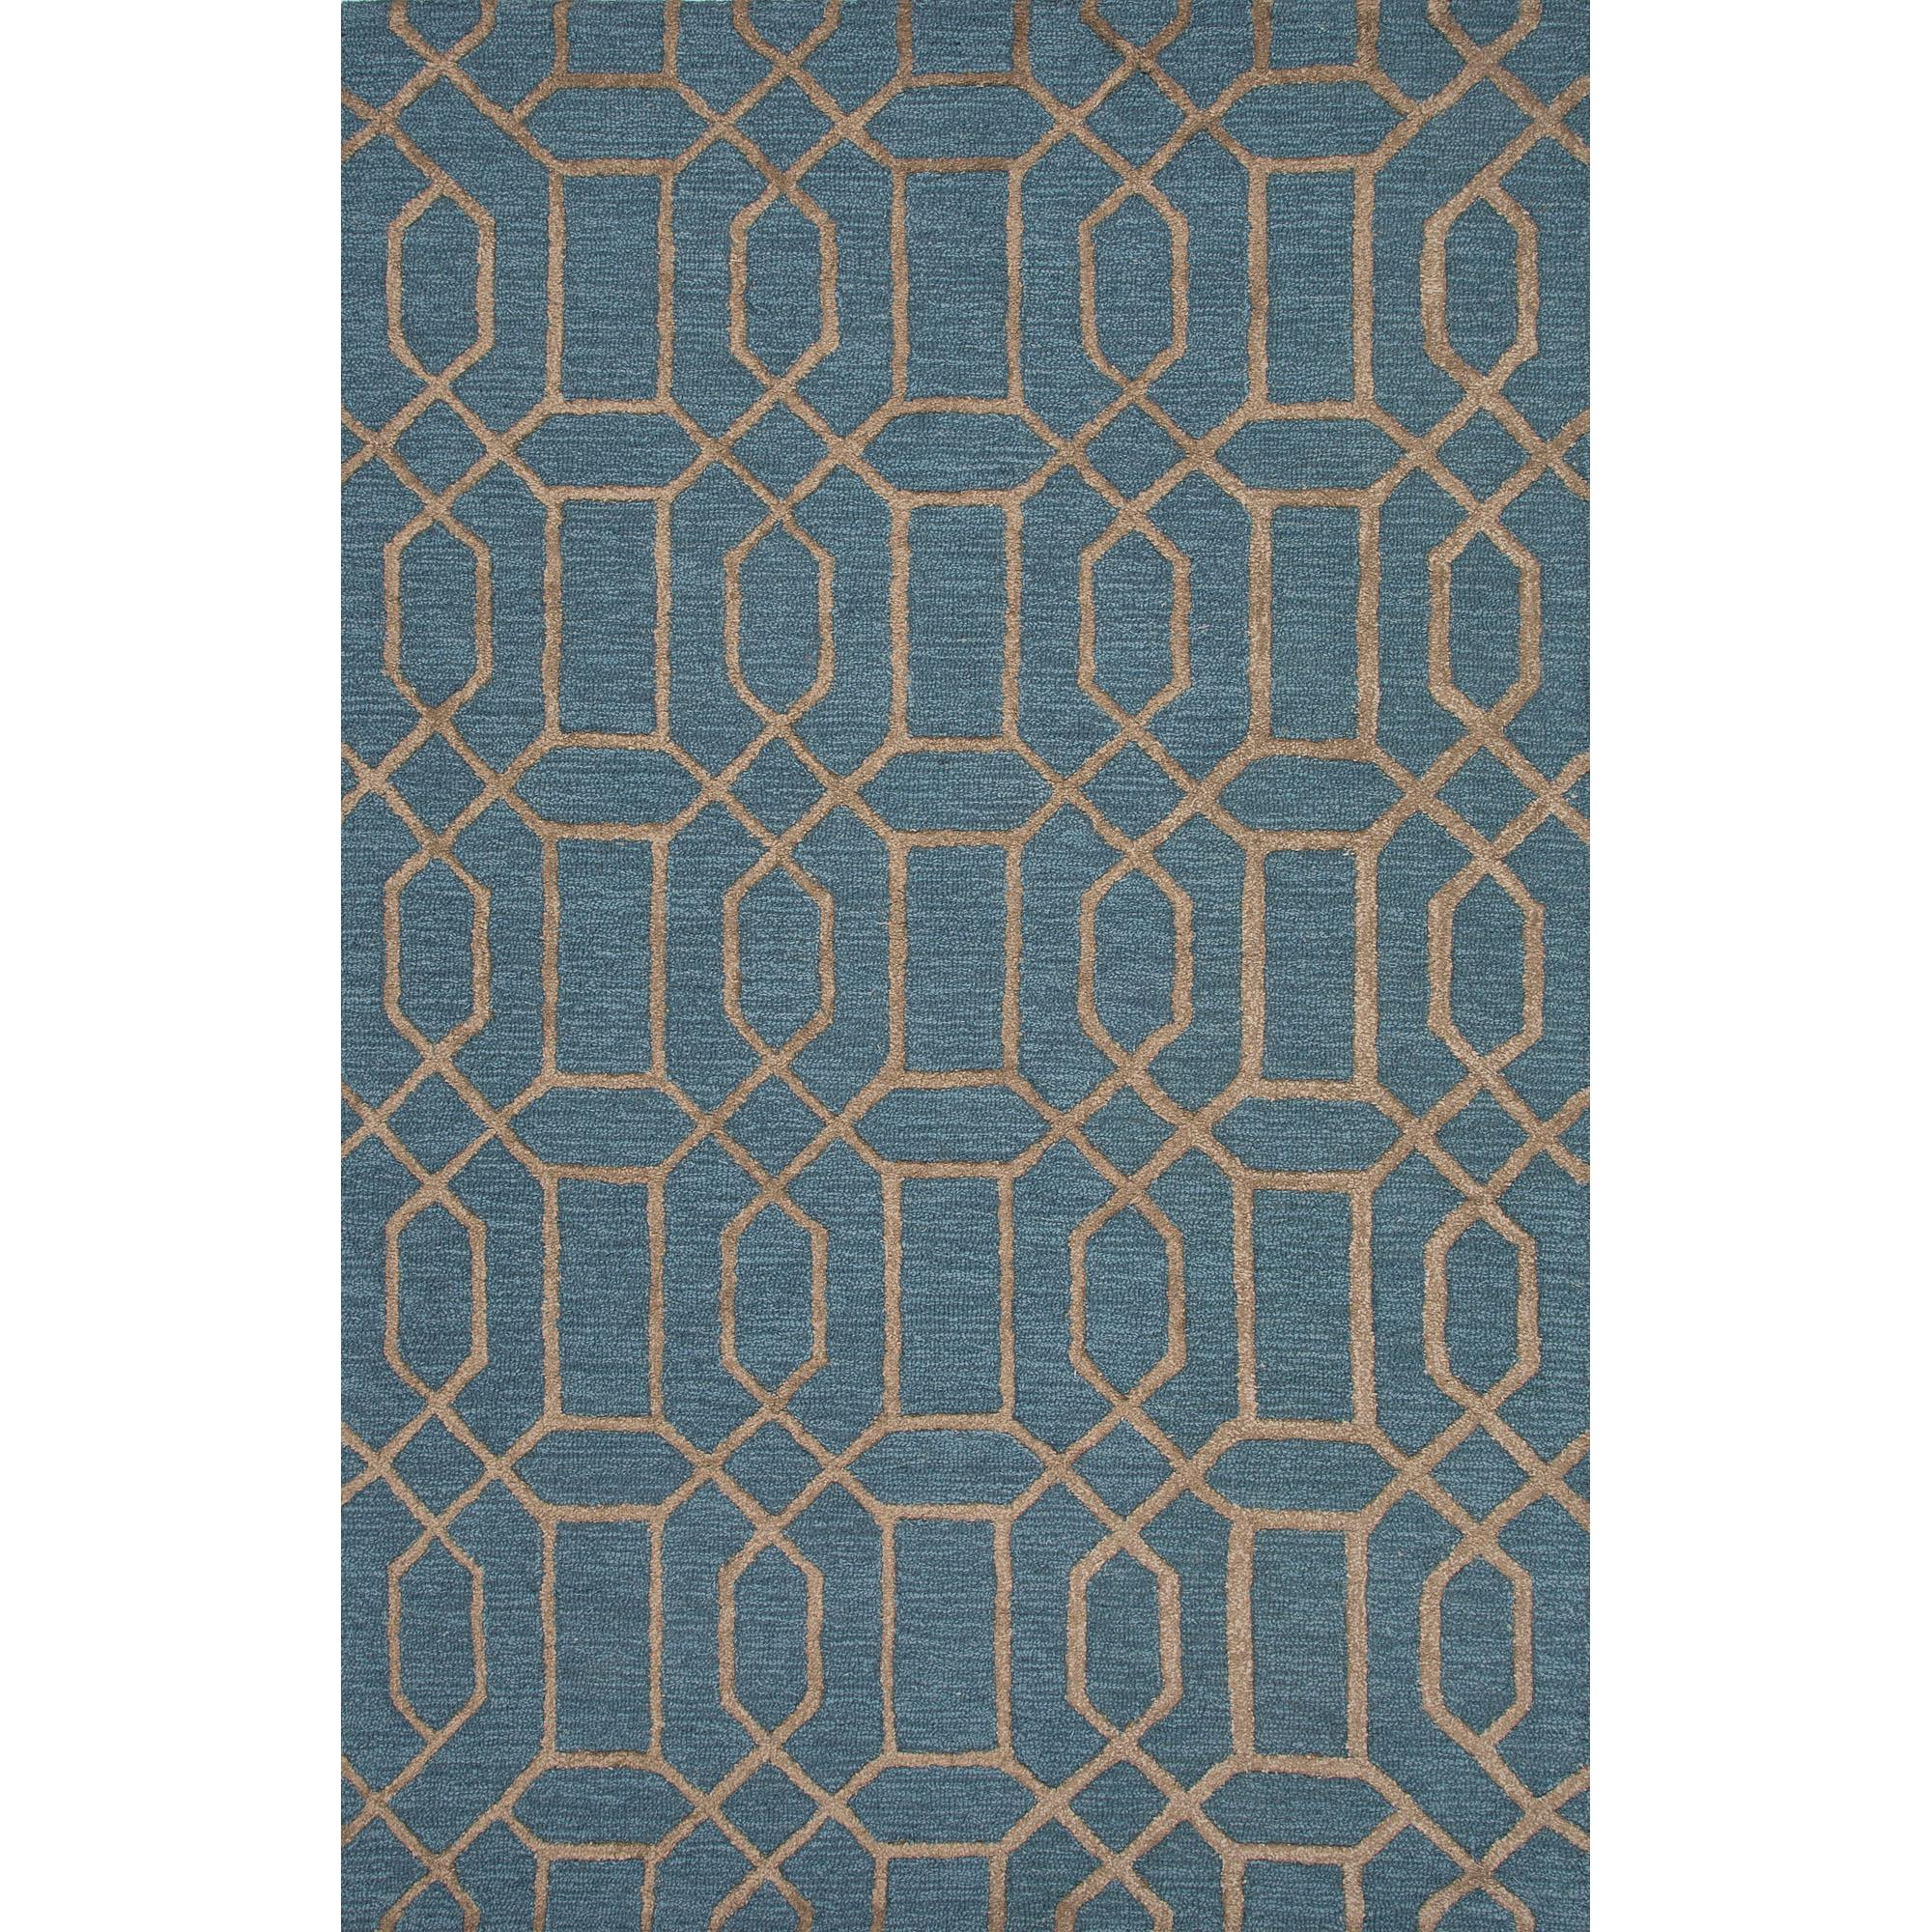 City 5 x 8 Rug by JAIPUR Living at Malouf Furniture Co.